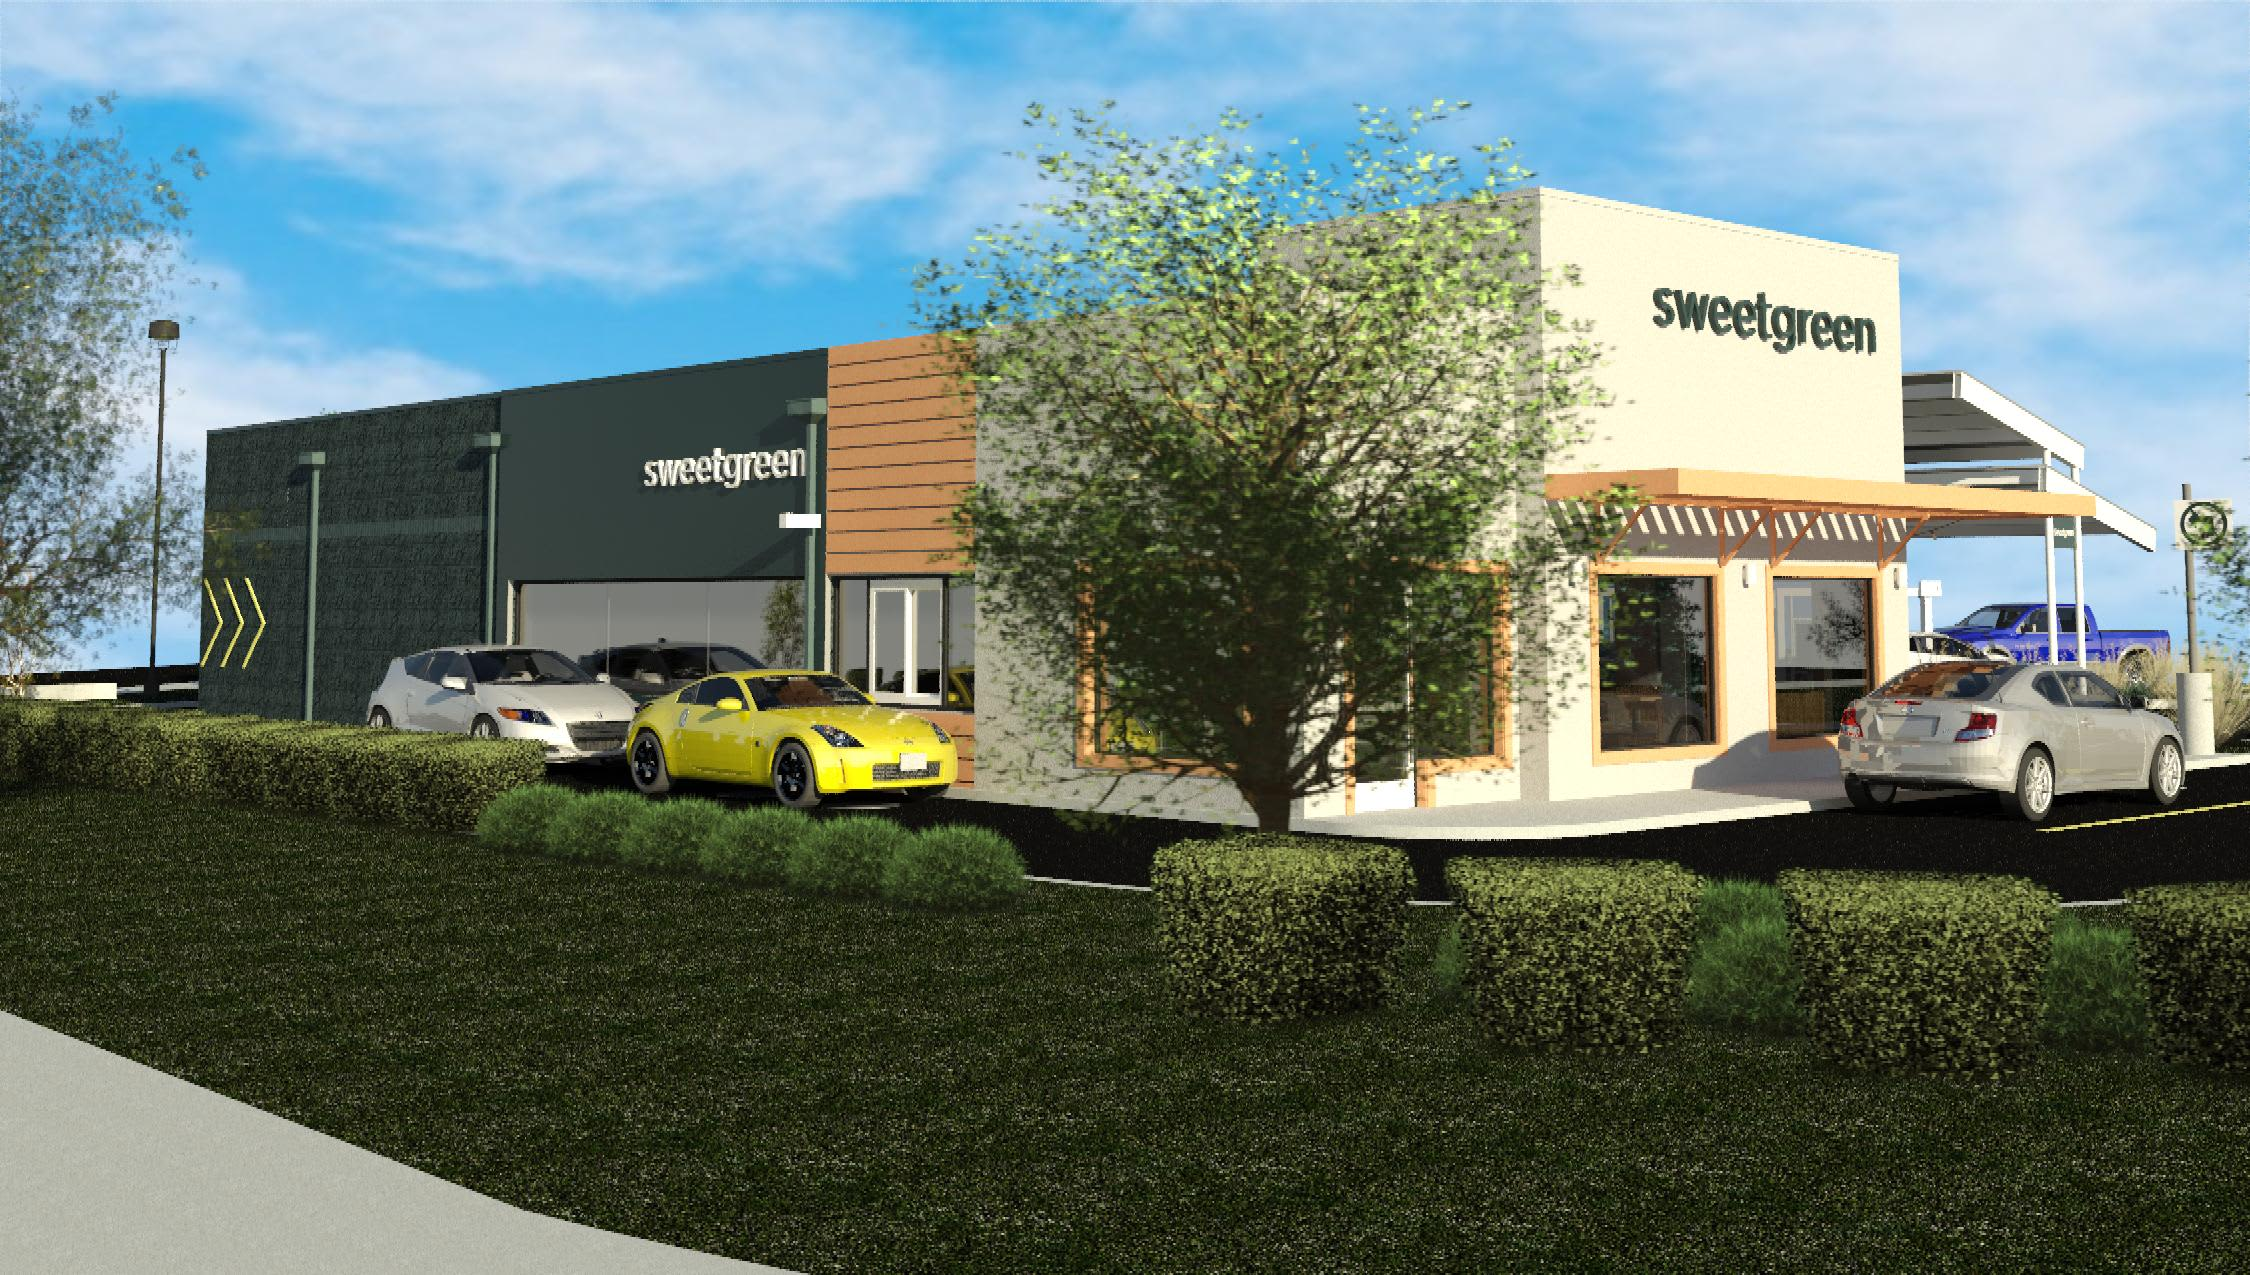 Sweetgreen will pilot a drive-in restaurant as part of suburban push